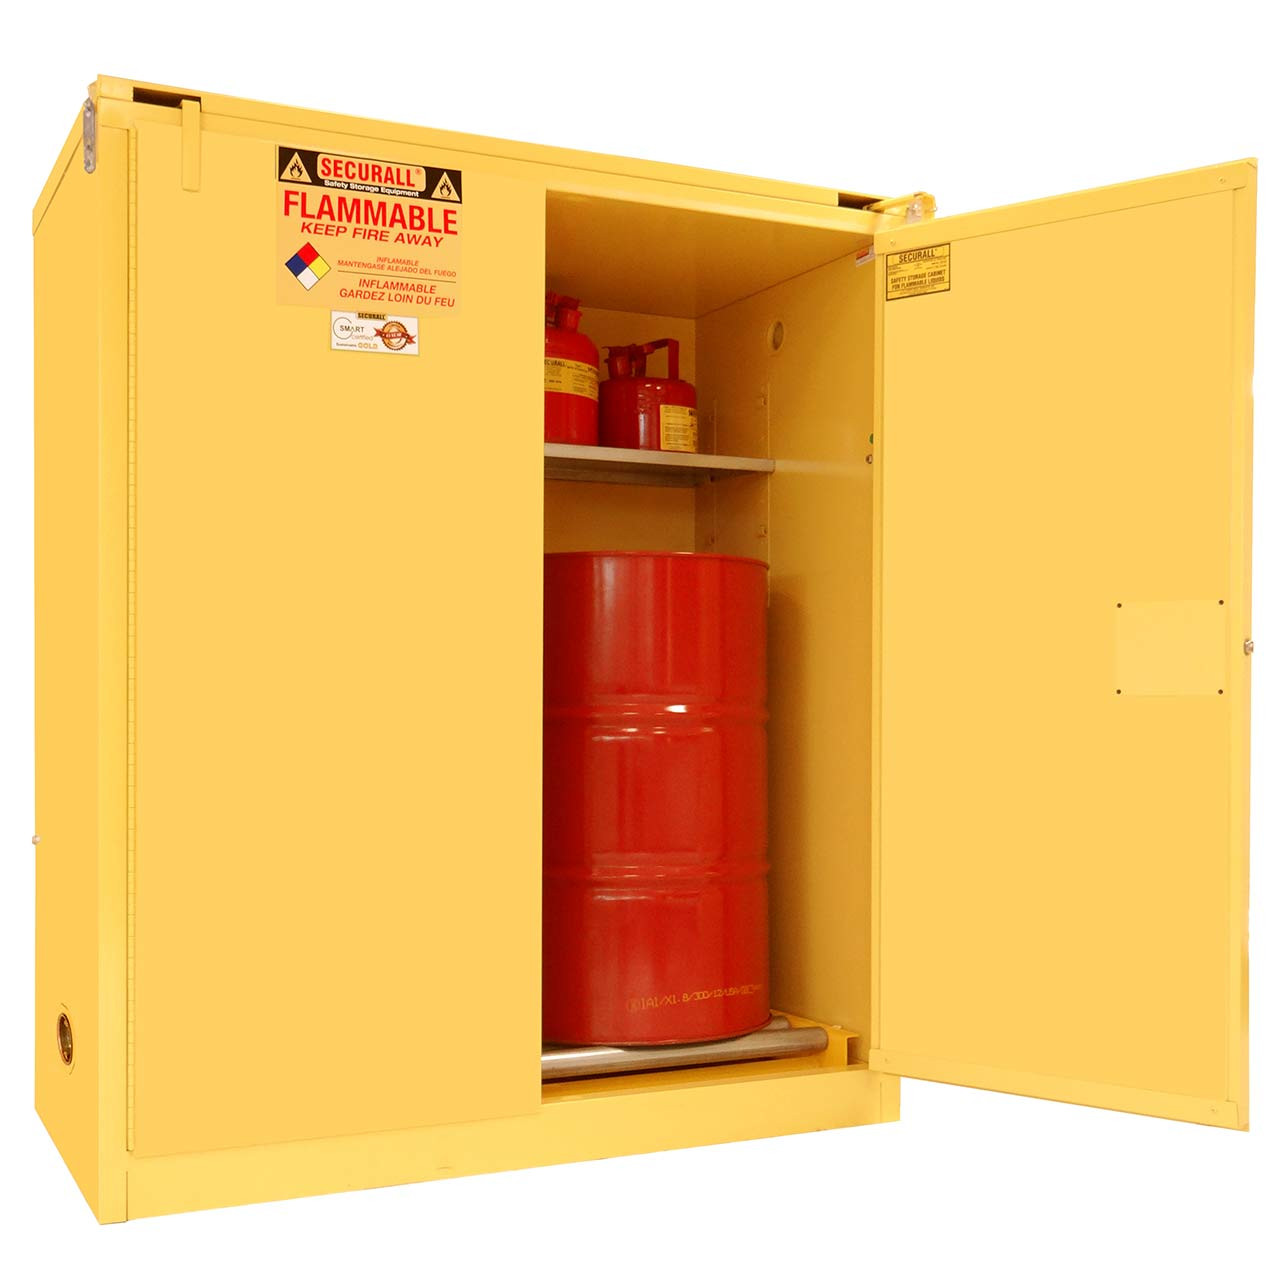 Flammable drum storage with safety door